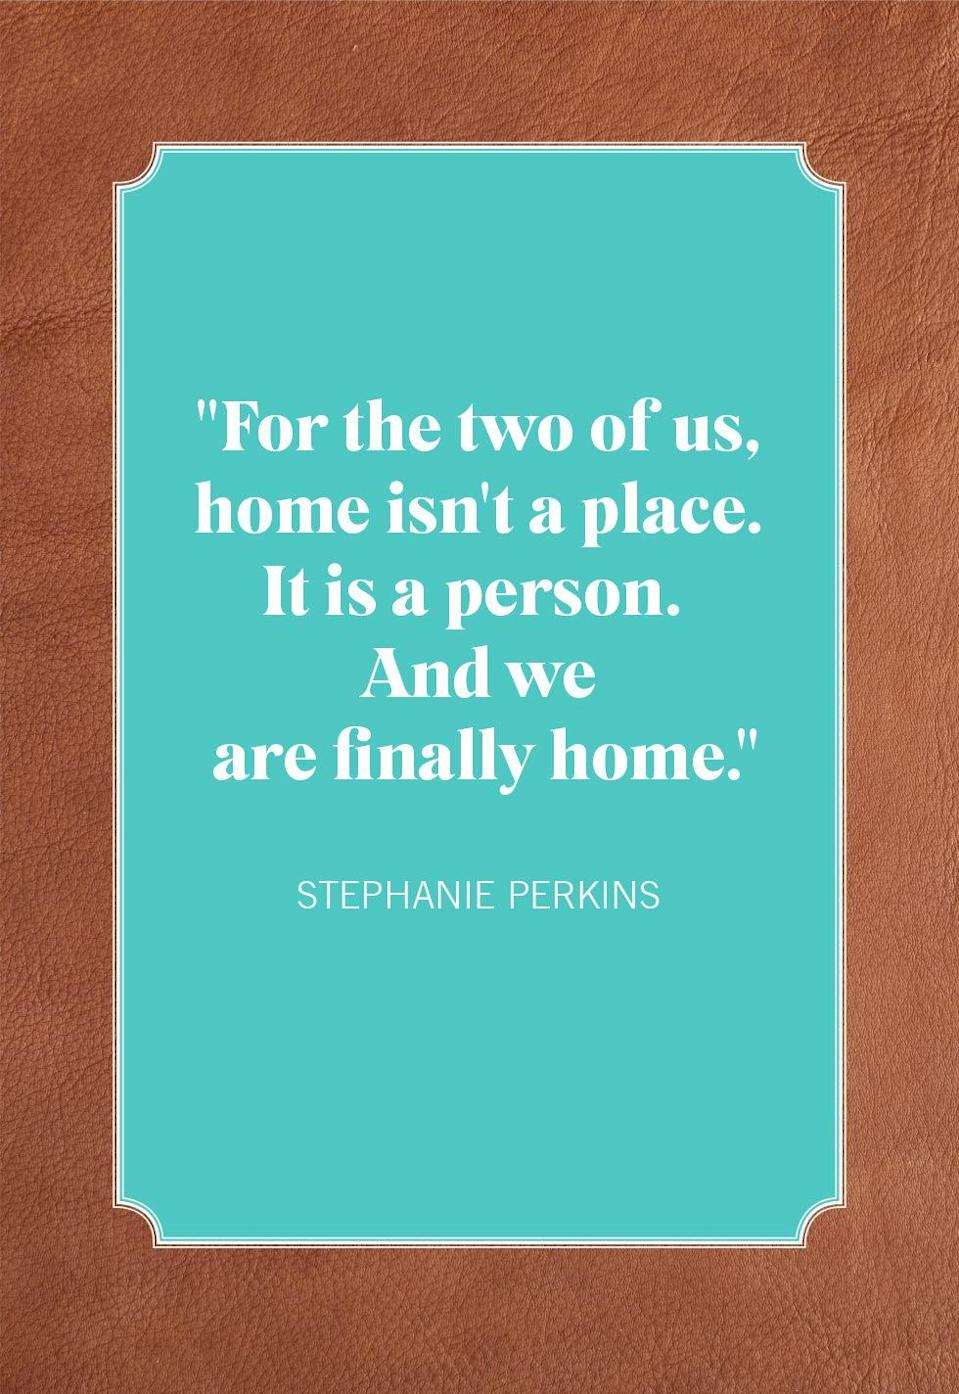 "<p>""For the two of us, home isn't a place. It is a person. And we are finally home.""</p>"